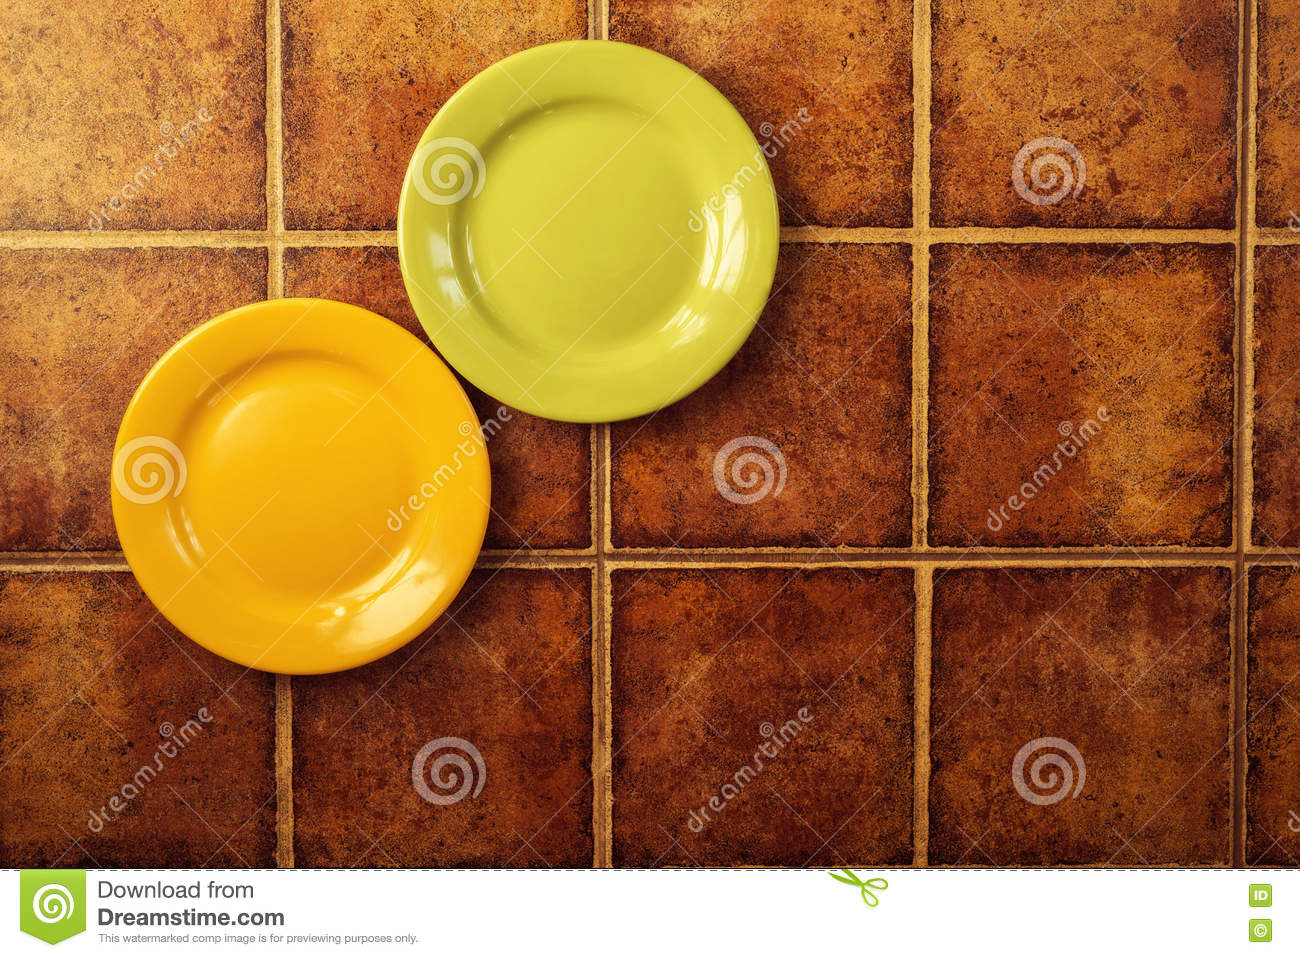 Two colored plates stock photo. Image of kitchenware - 72896882